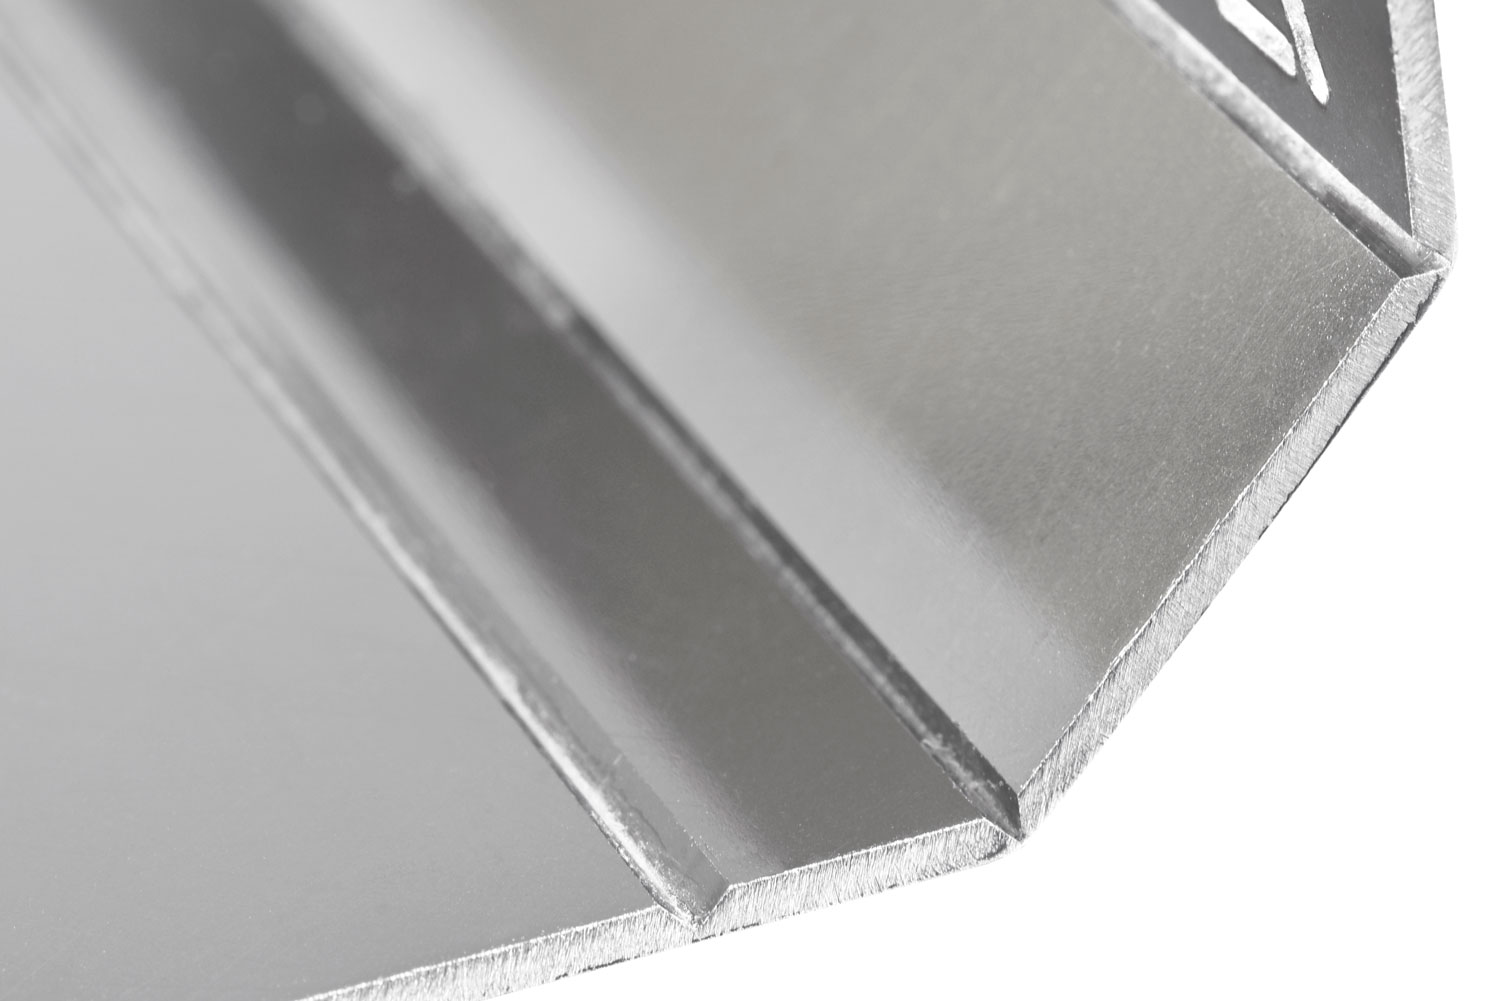 FOLDING DETAIL ON MIRROR STAINLESS STEEL